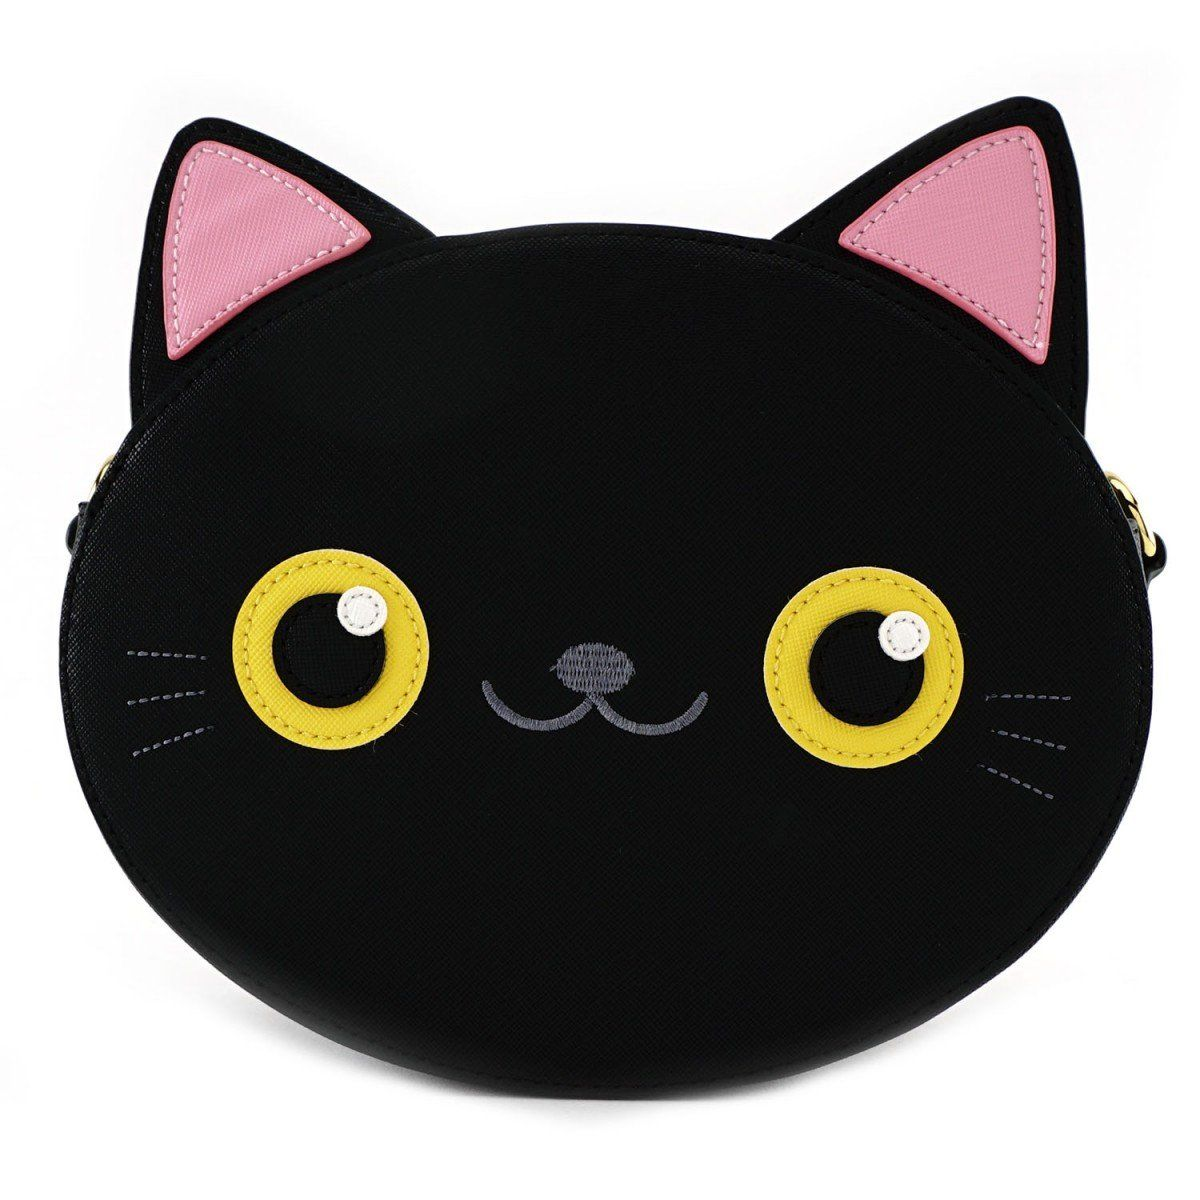 Photo of Loungefly Black Cat Face Crossbody Purse Bag Tote